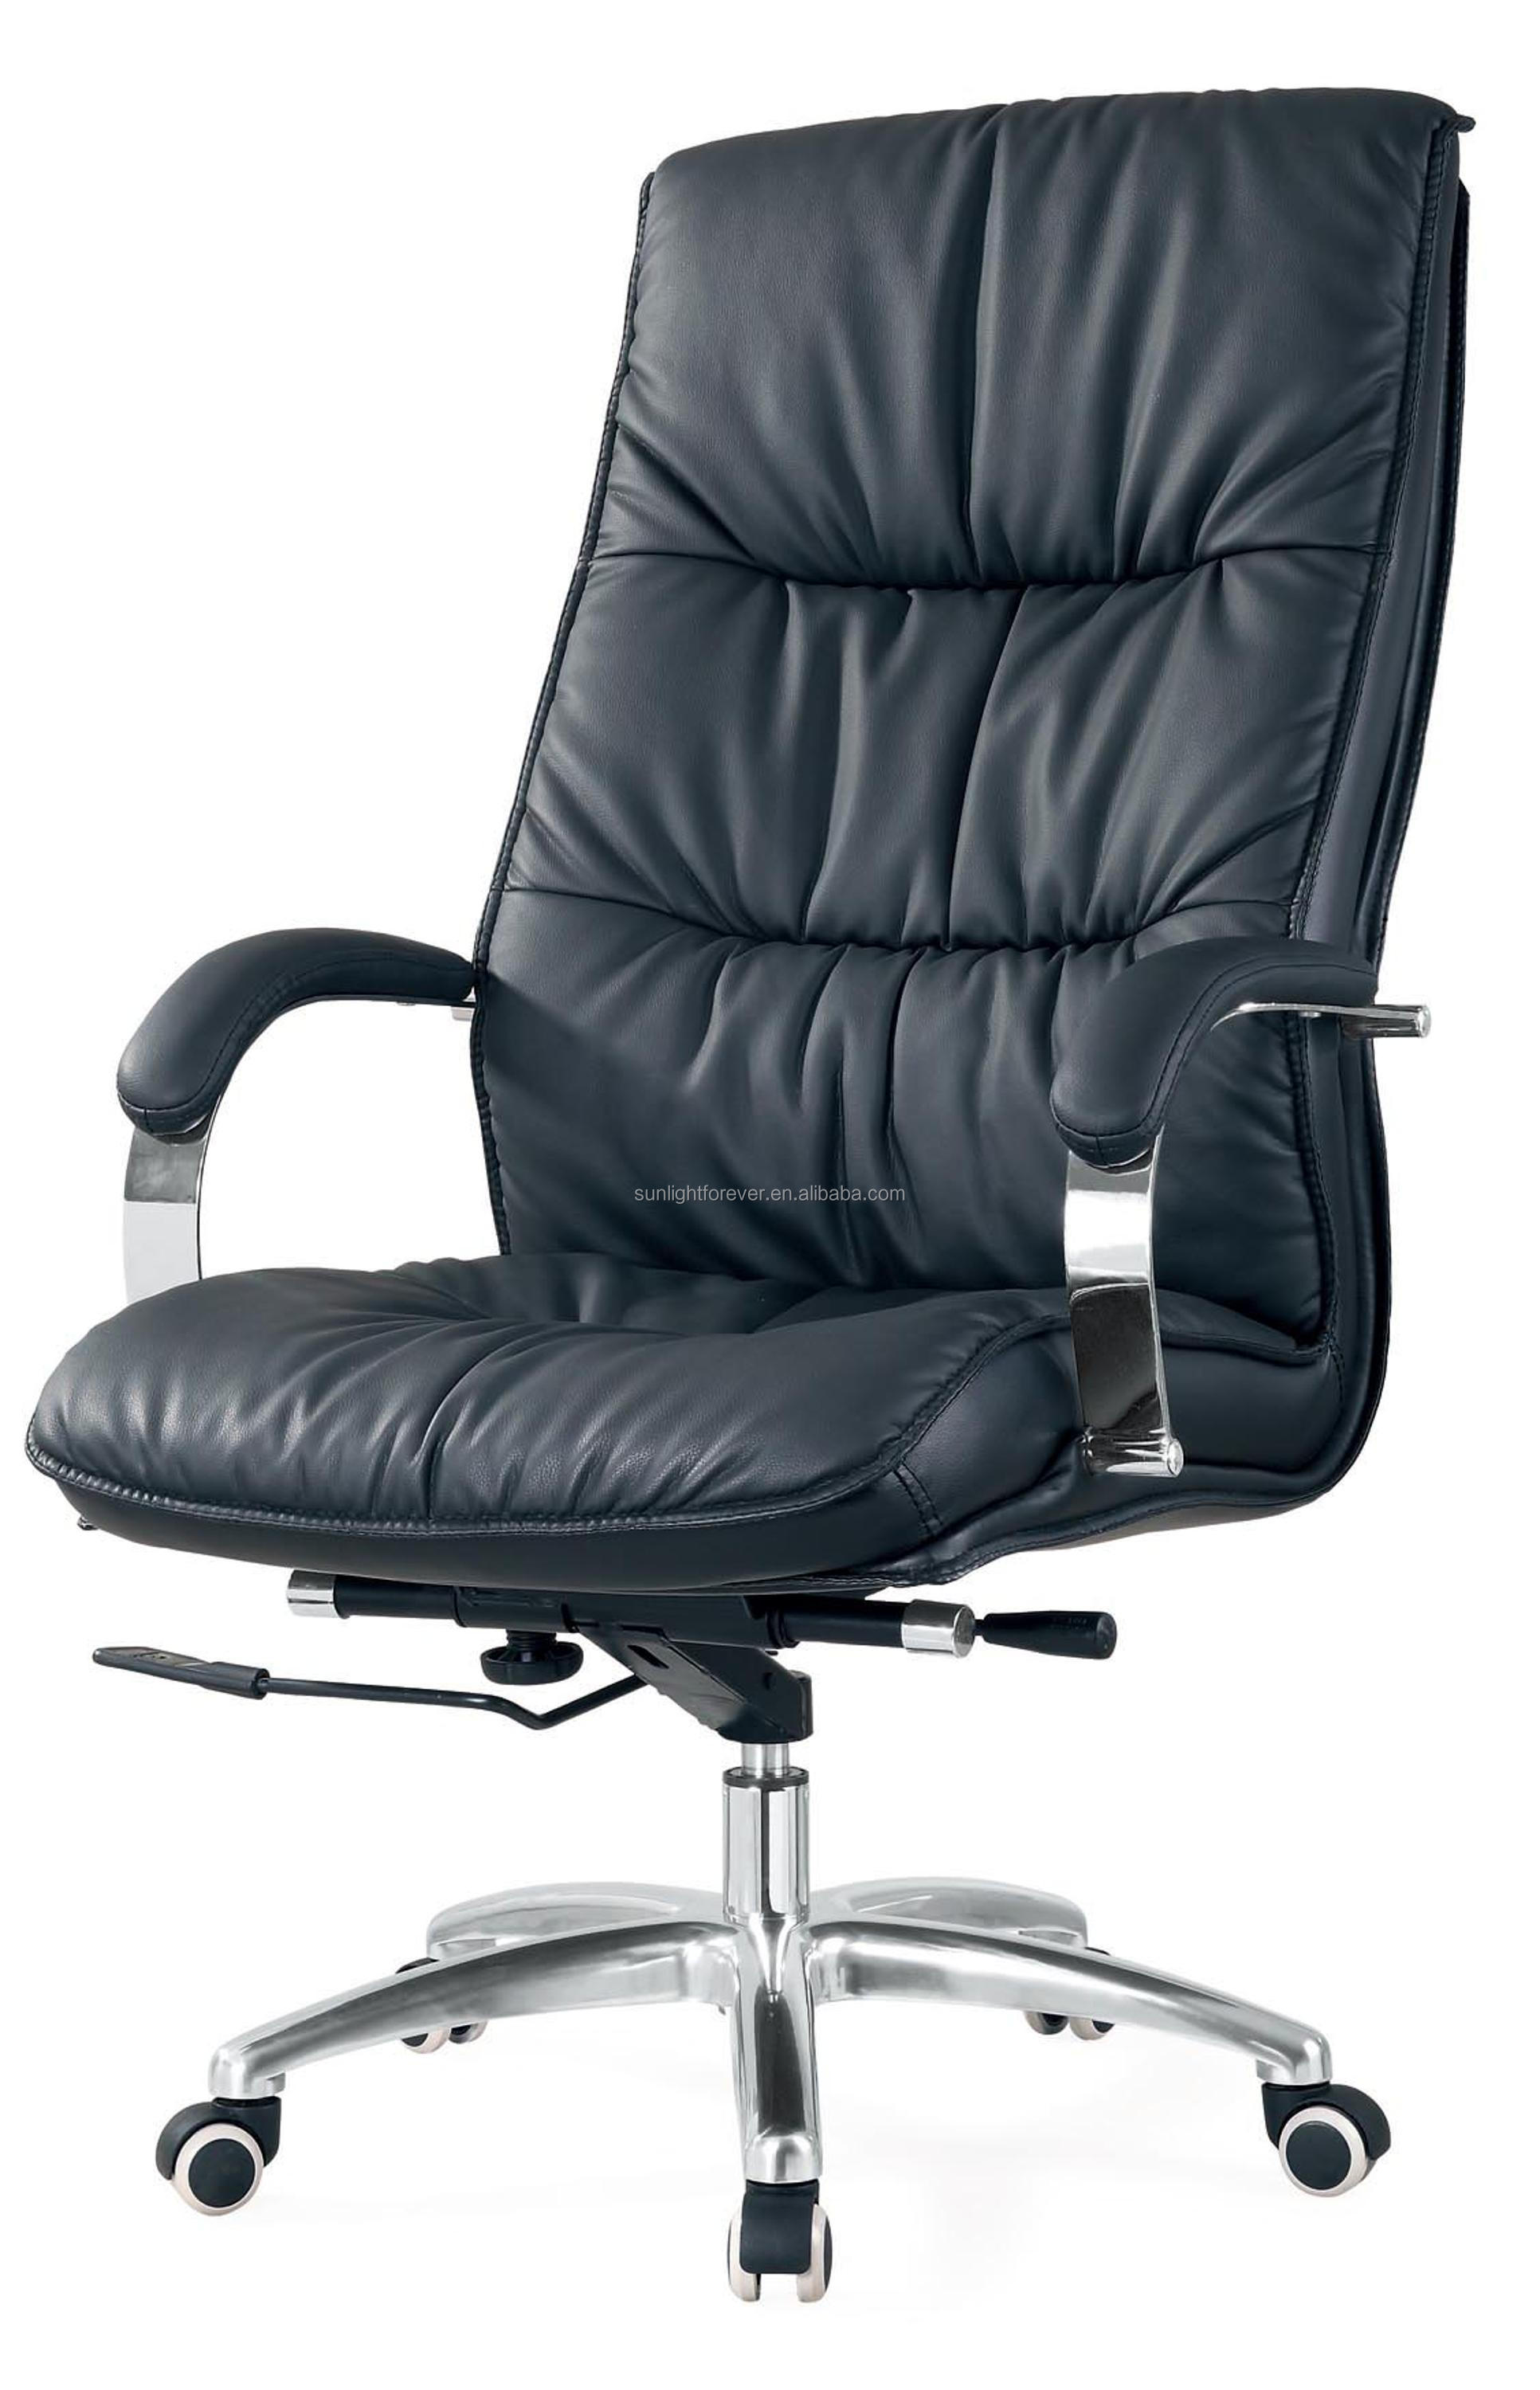 fice Chair Sample fice Chair Sample Suppliers and